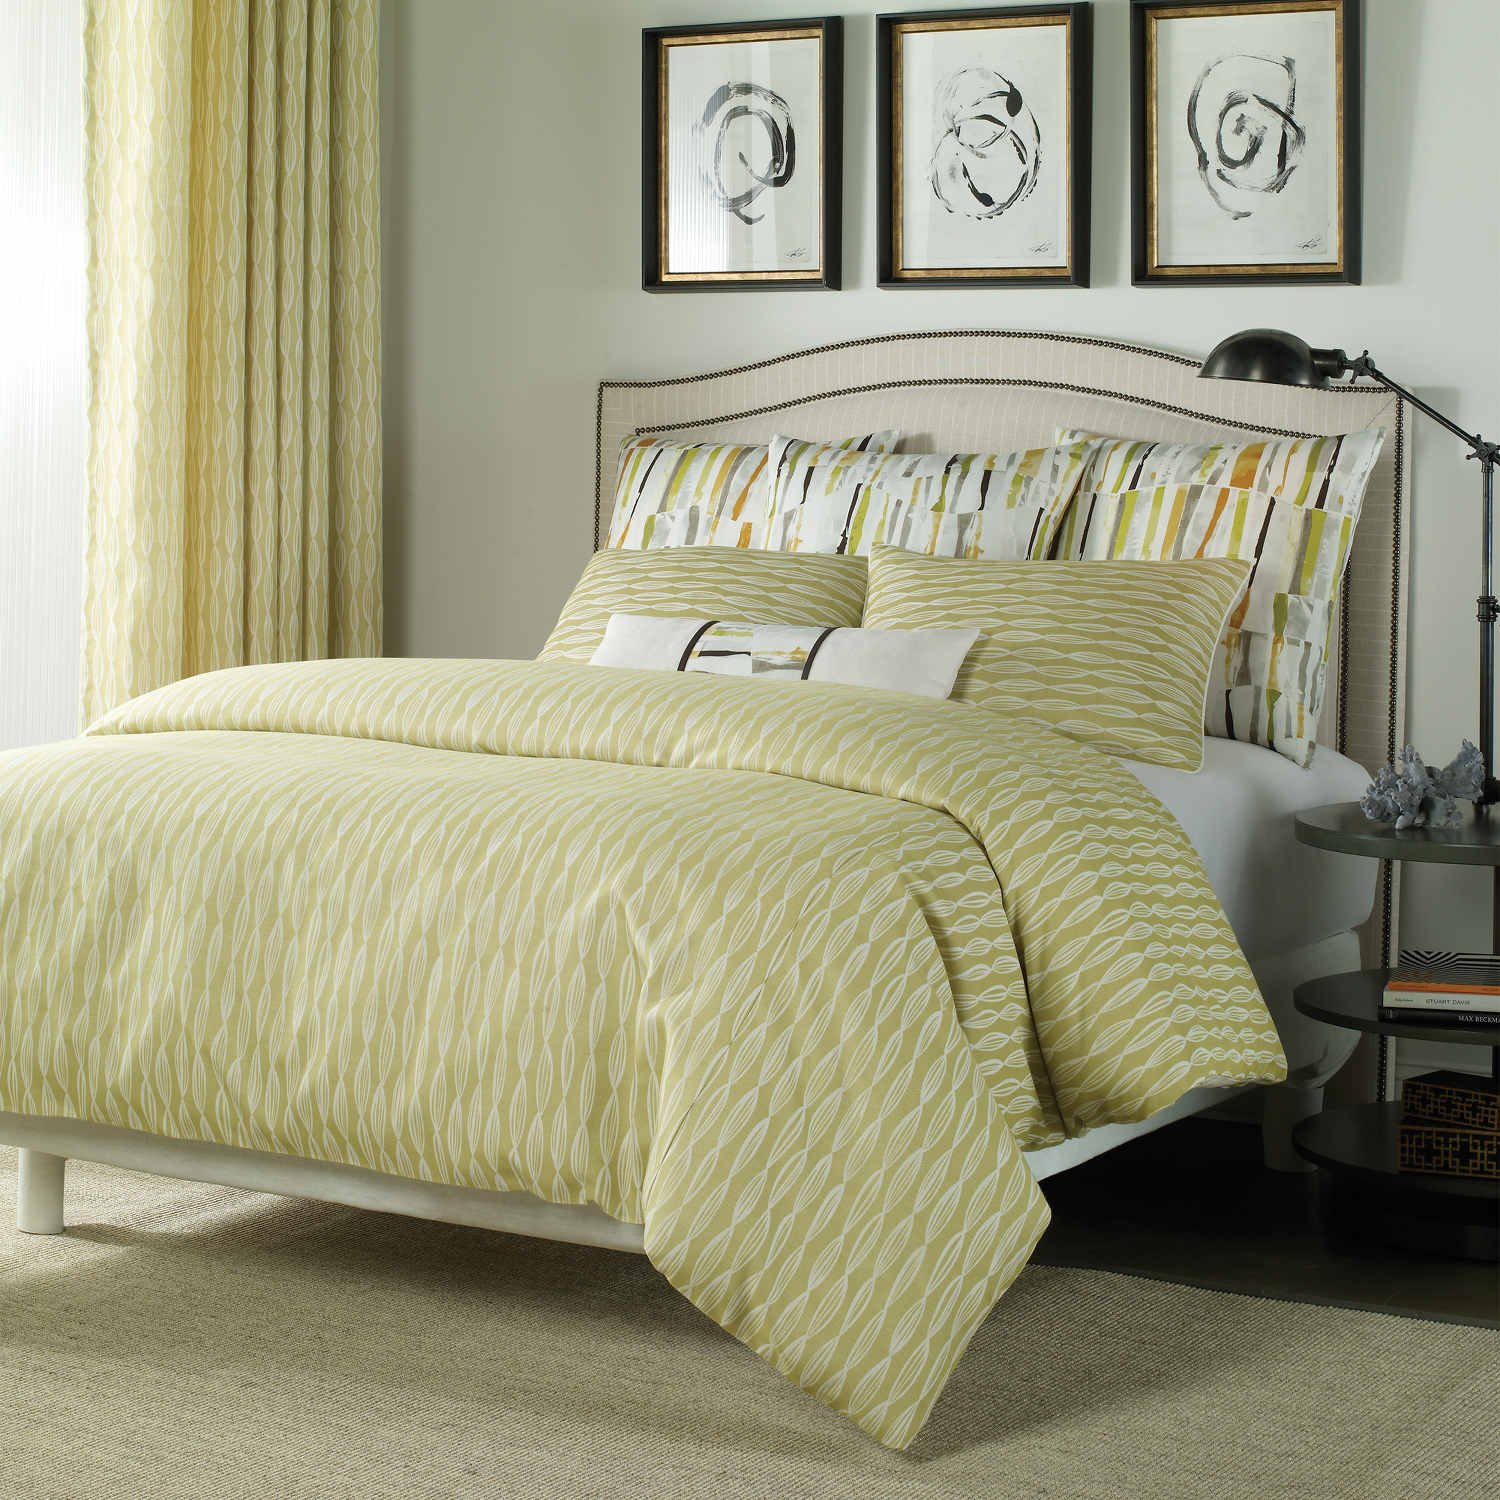 Wildcat Territory Bedding - Jane Collection Swatch